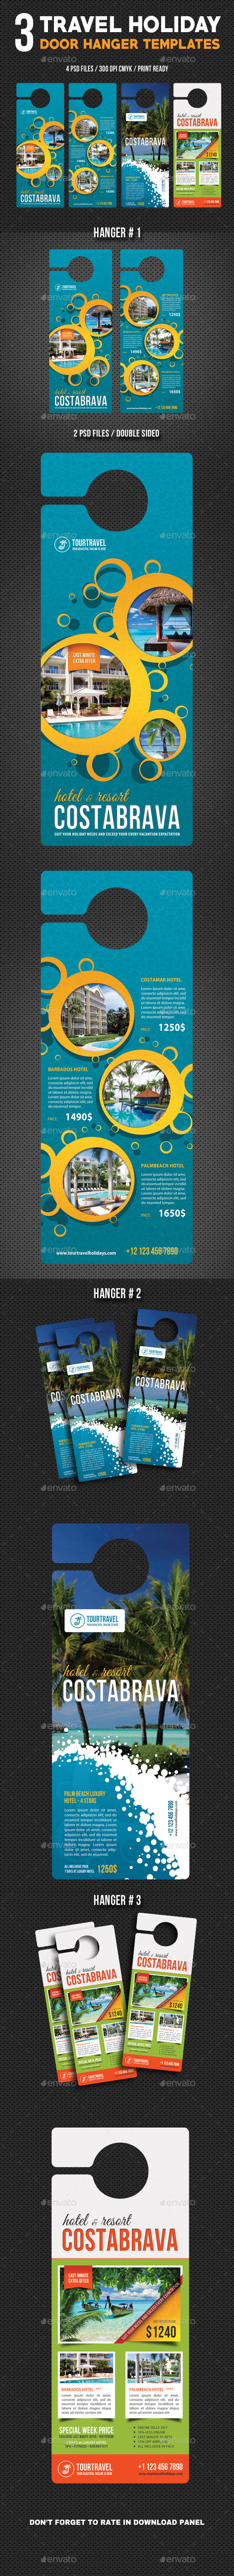 3 Travel Holiday Door Hanger Bundle 02